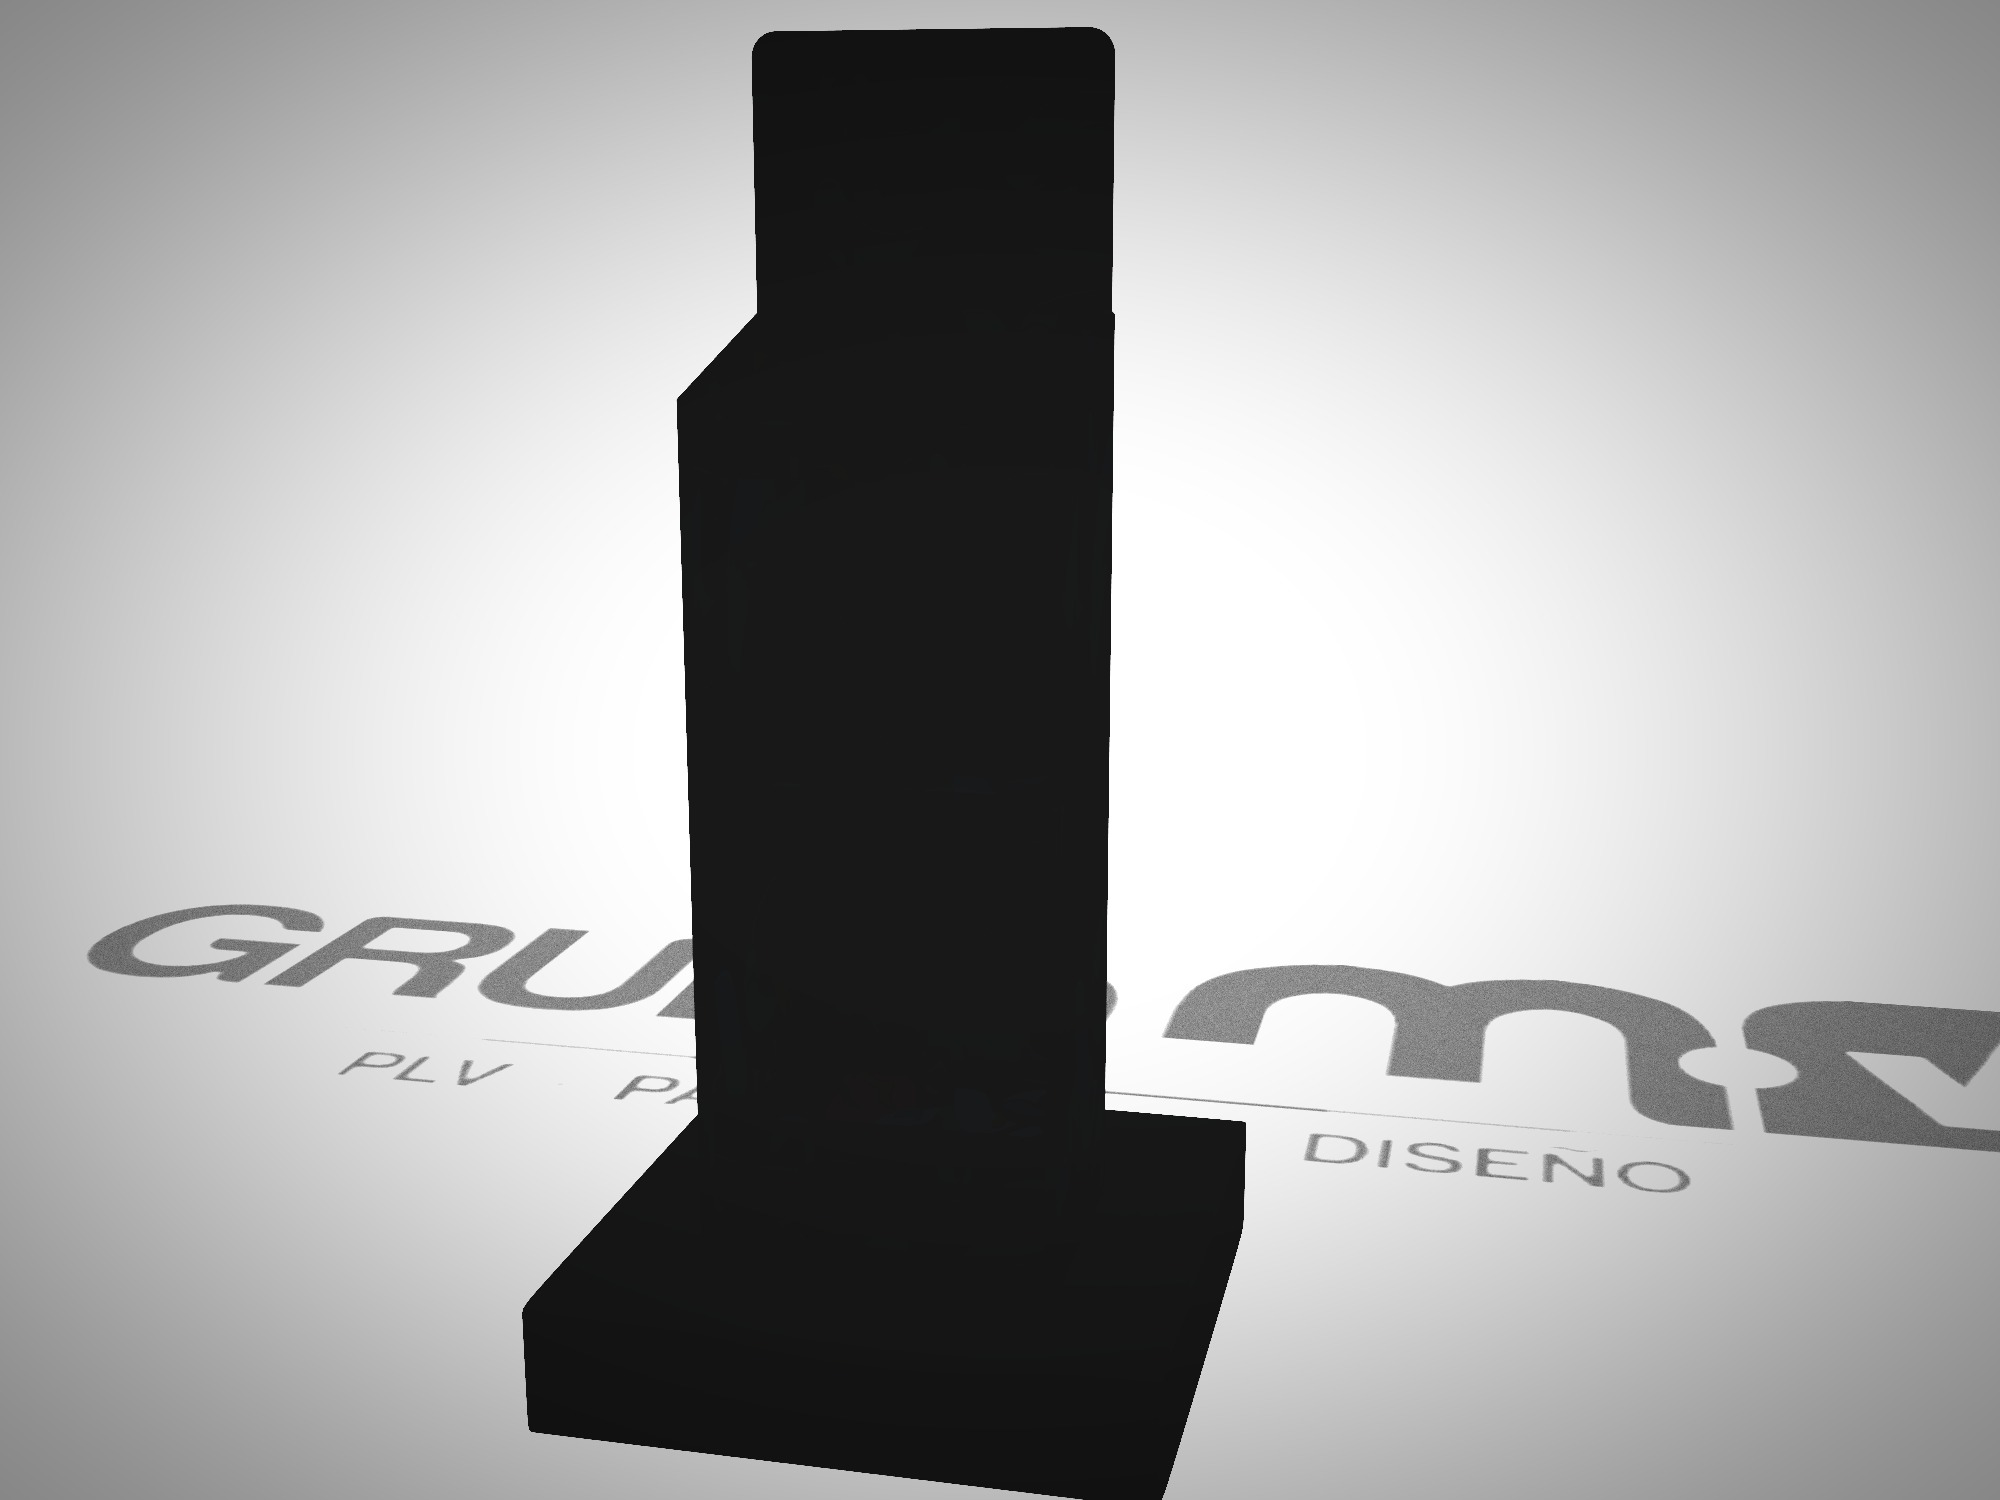 PRUEBA - 3D design by erredgrafico on Dec 11, 2018